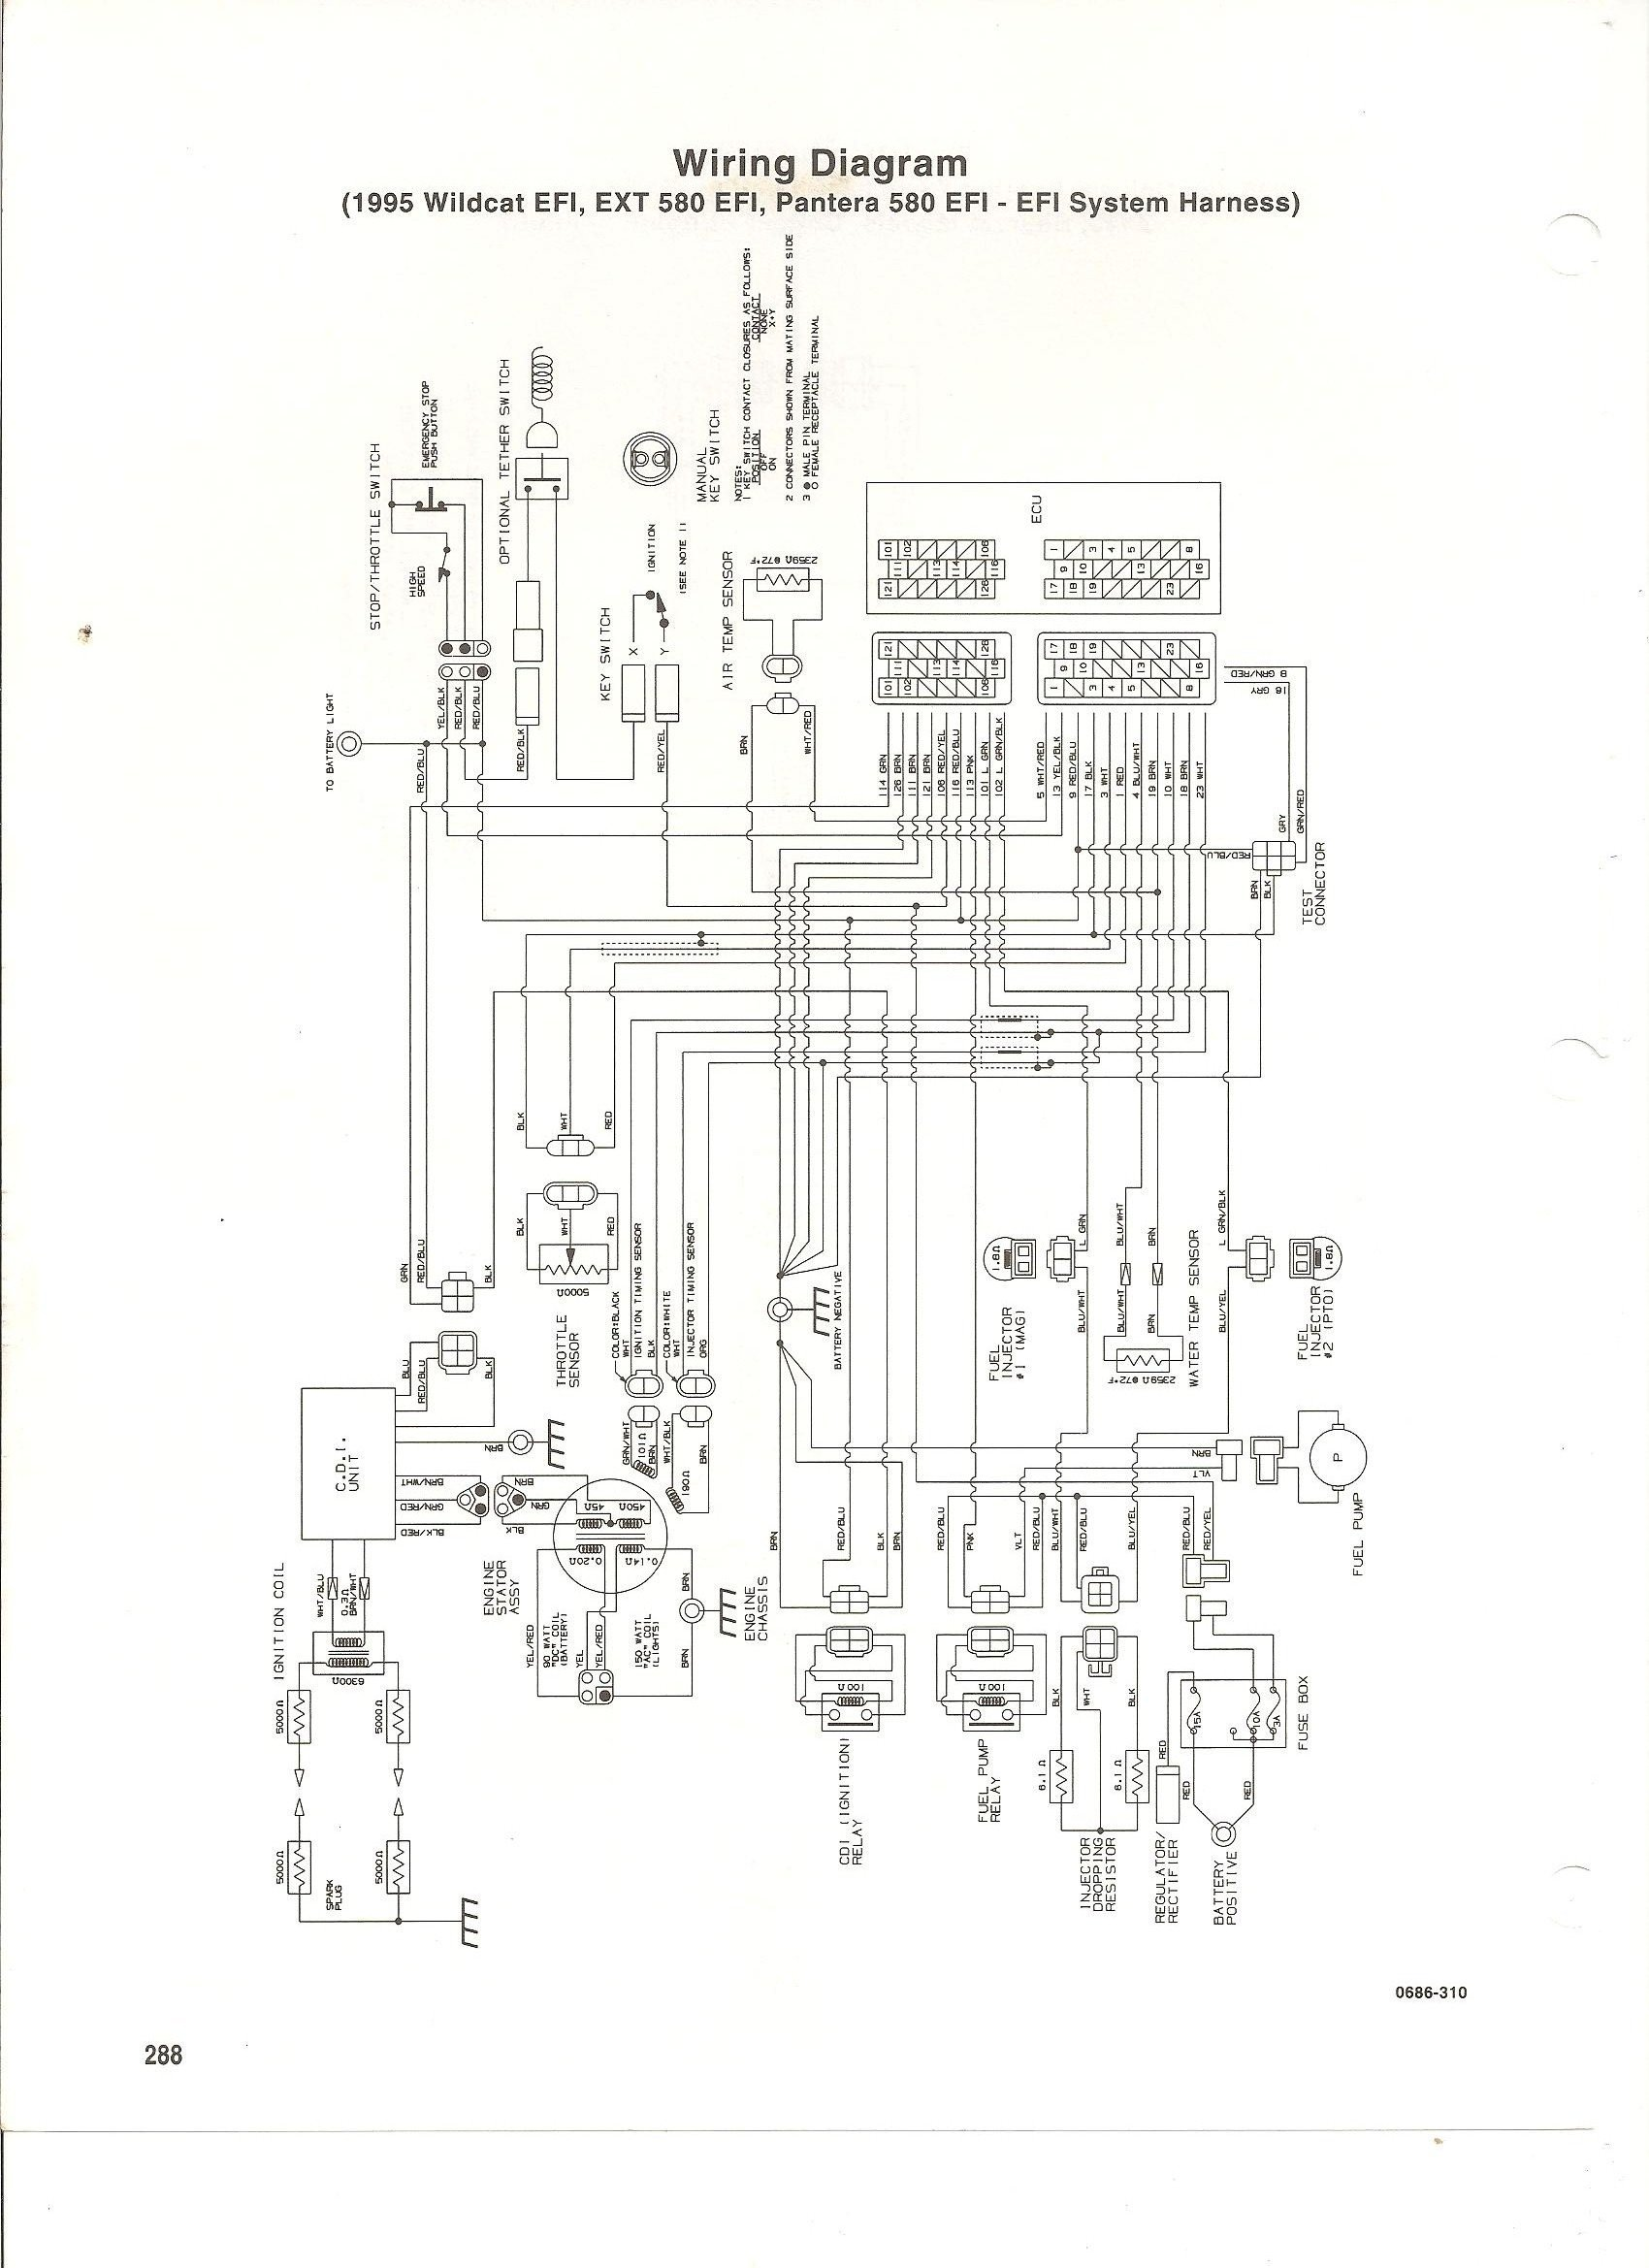 Wiring Diagram Polaris Sportsman 300 Powerking